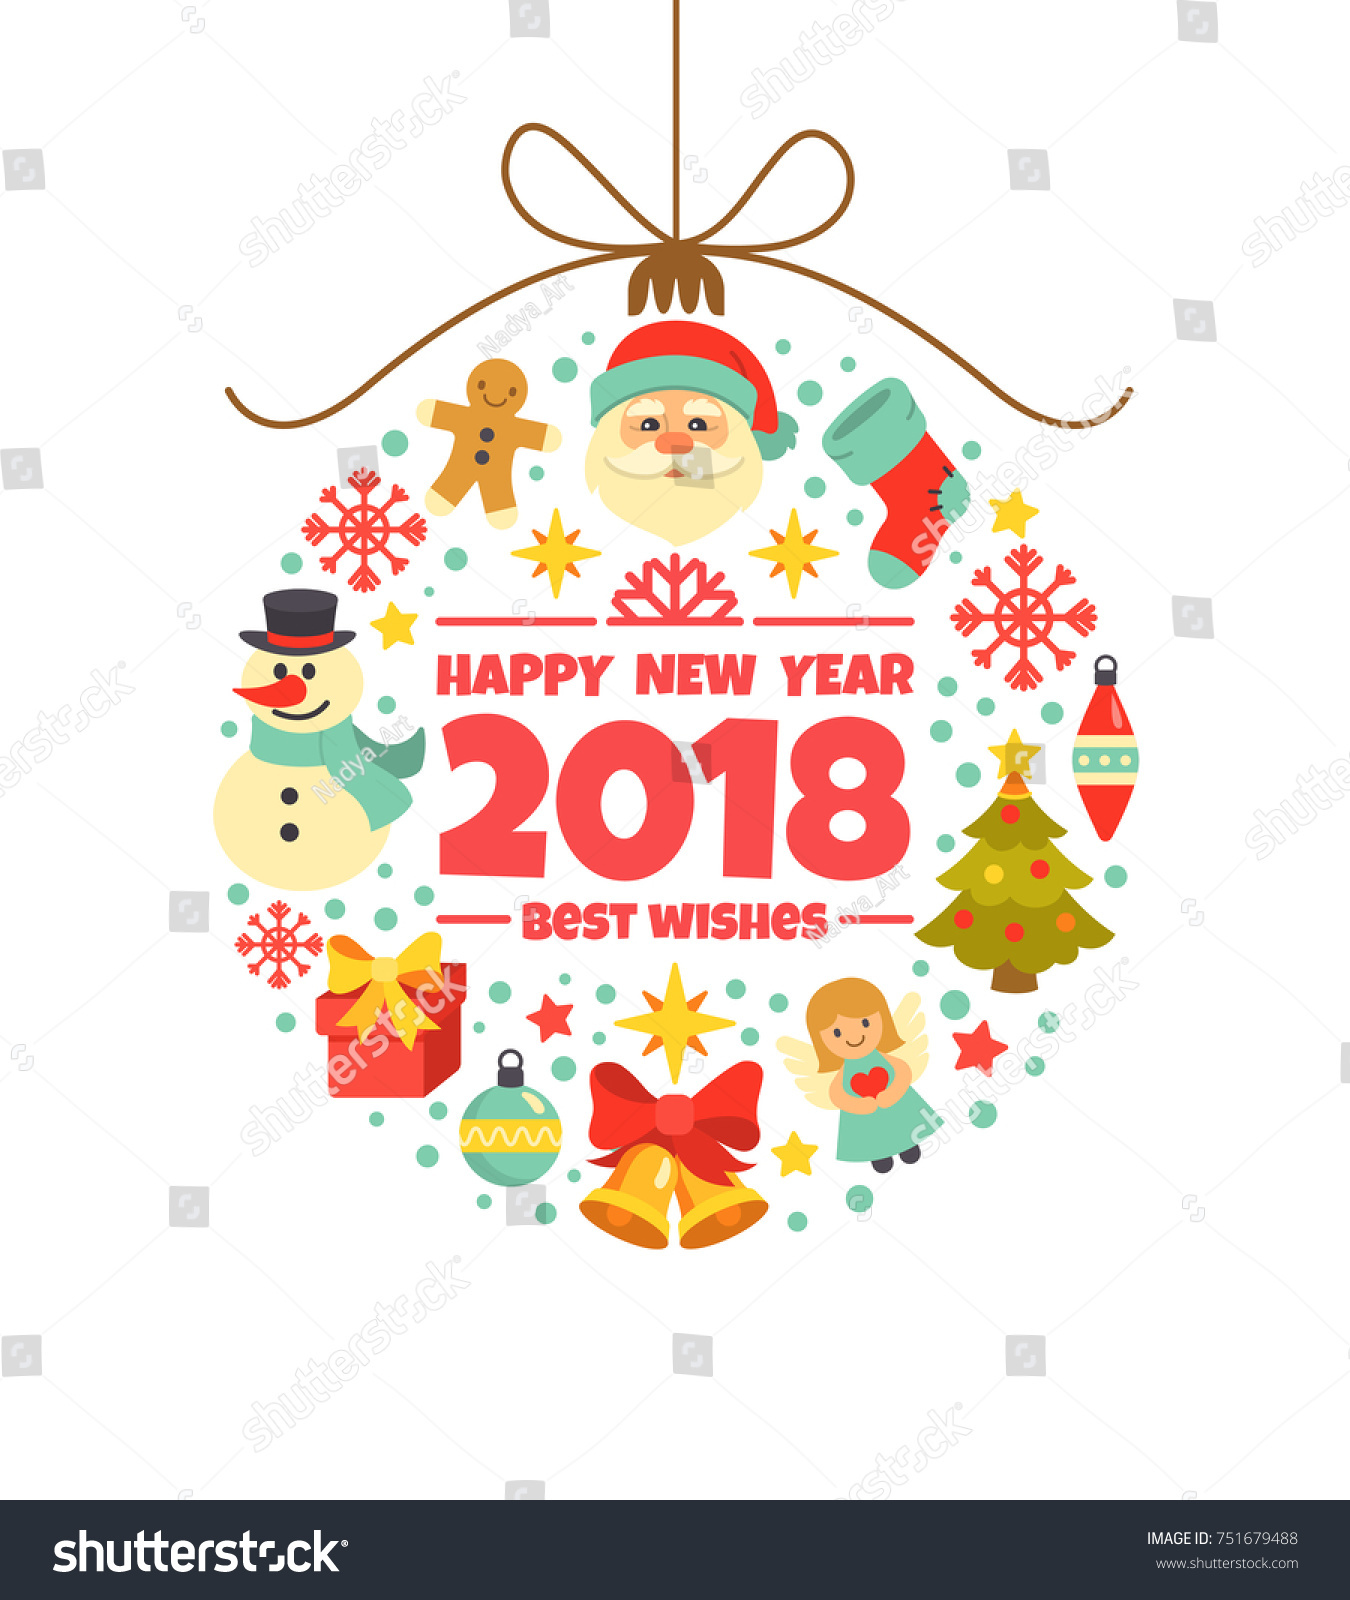 Happy new year 2018 greeting card stock vector royalty free happy new year 2018 greeting card vector illustration with christmas toy consisting of christmas symbols m4hsunfo